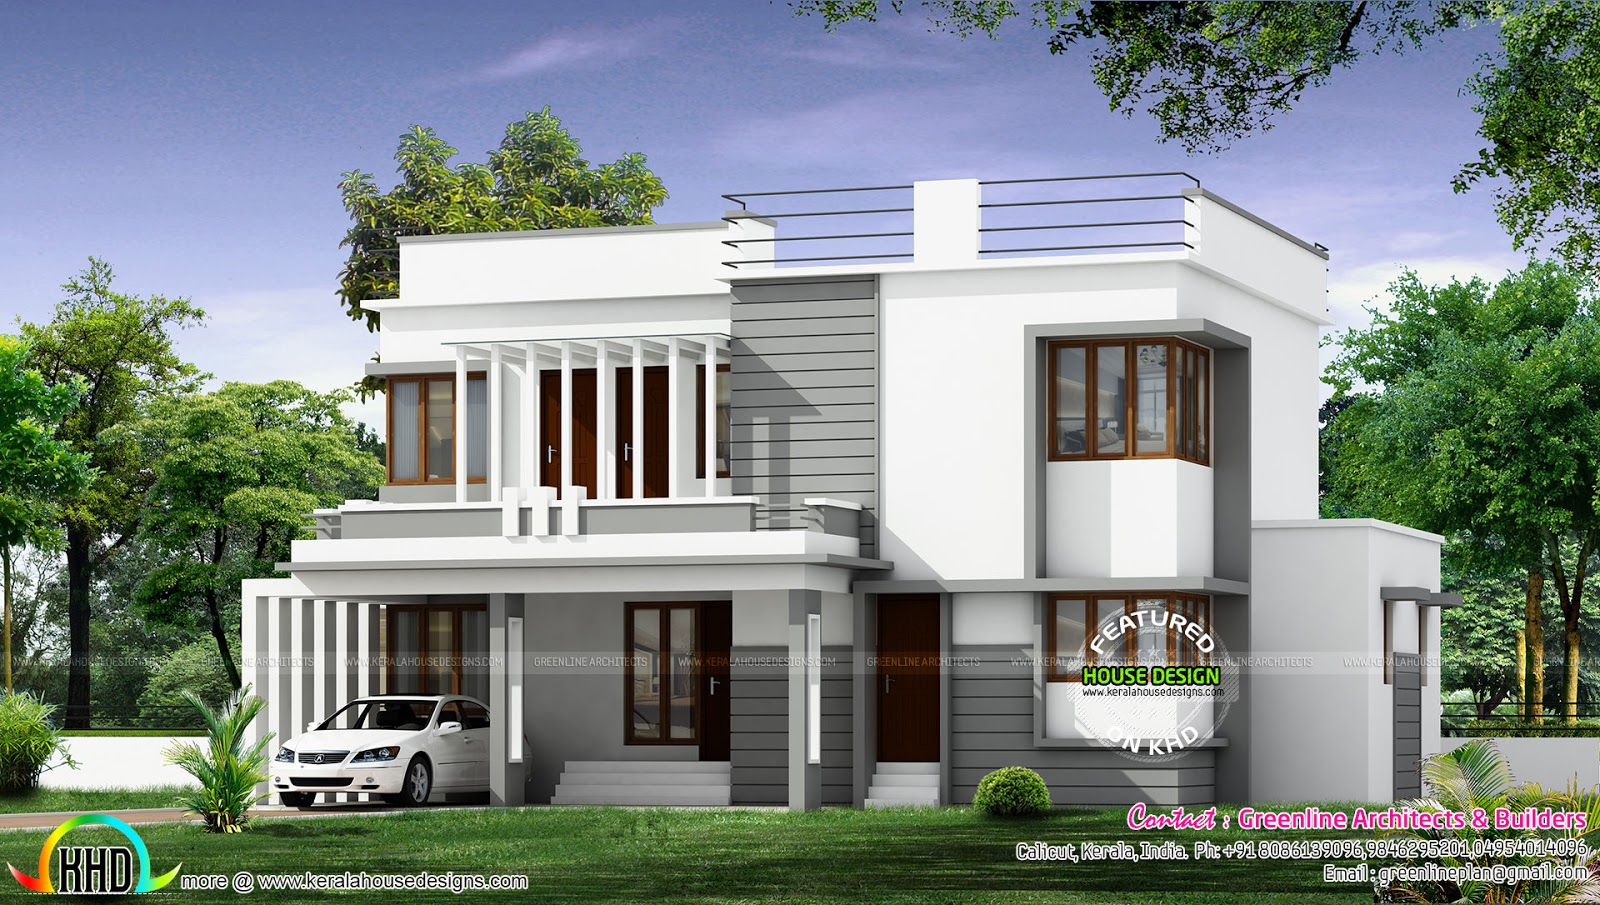 New modern house architecture kerala home design and for New modern building design